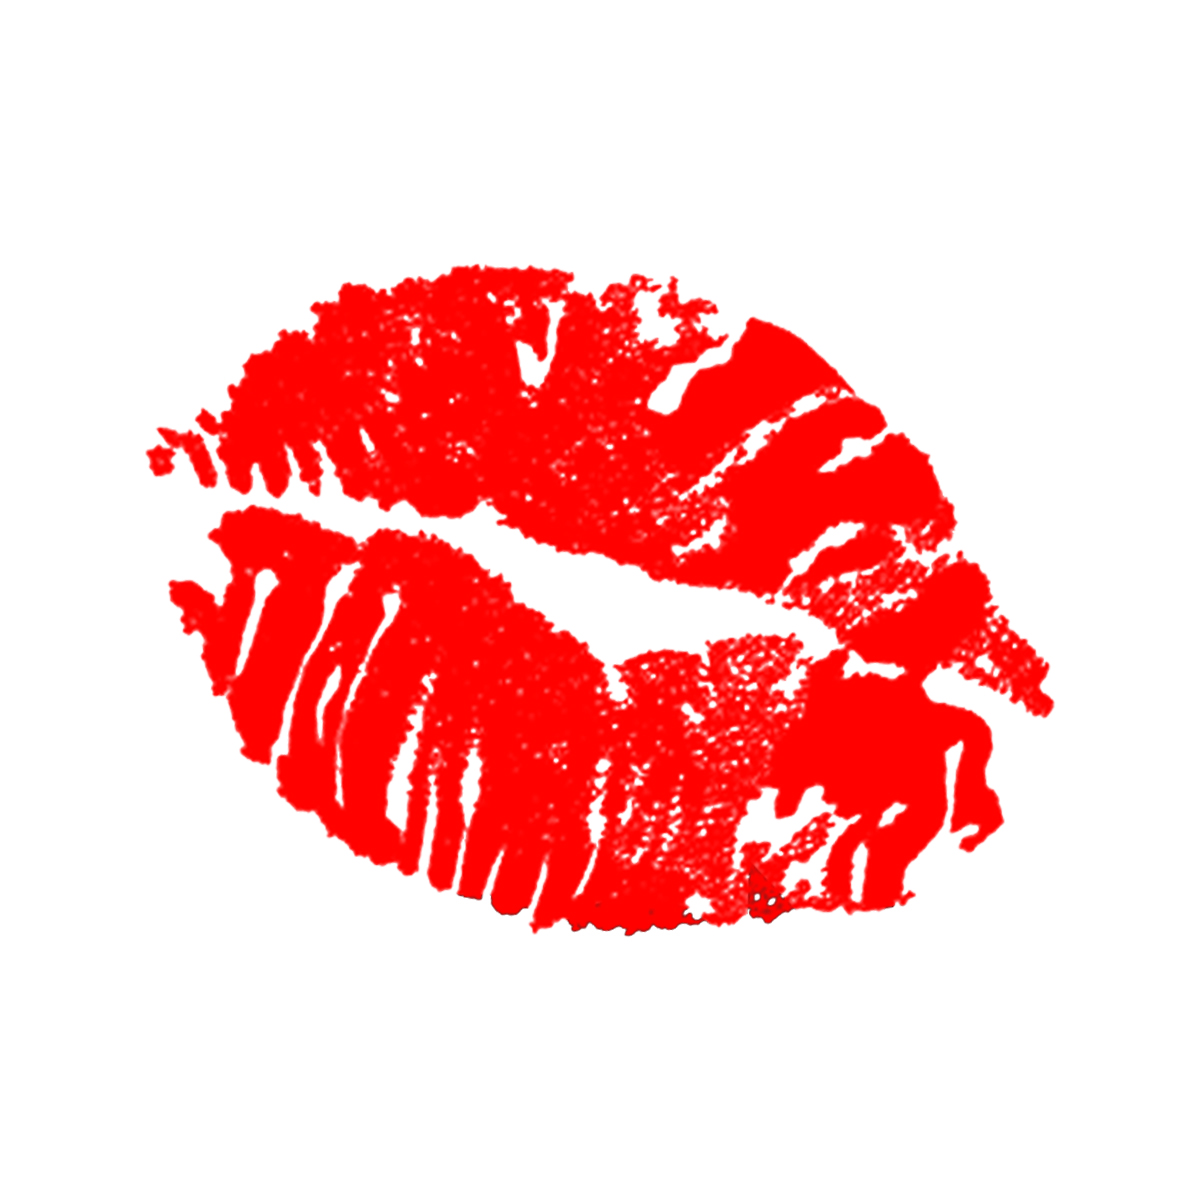 KESTON LIPS ONLY LOGO.jpg